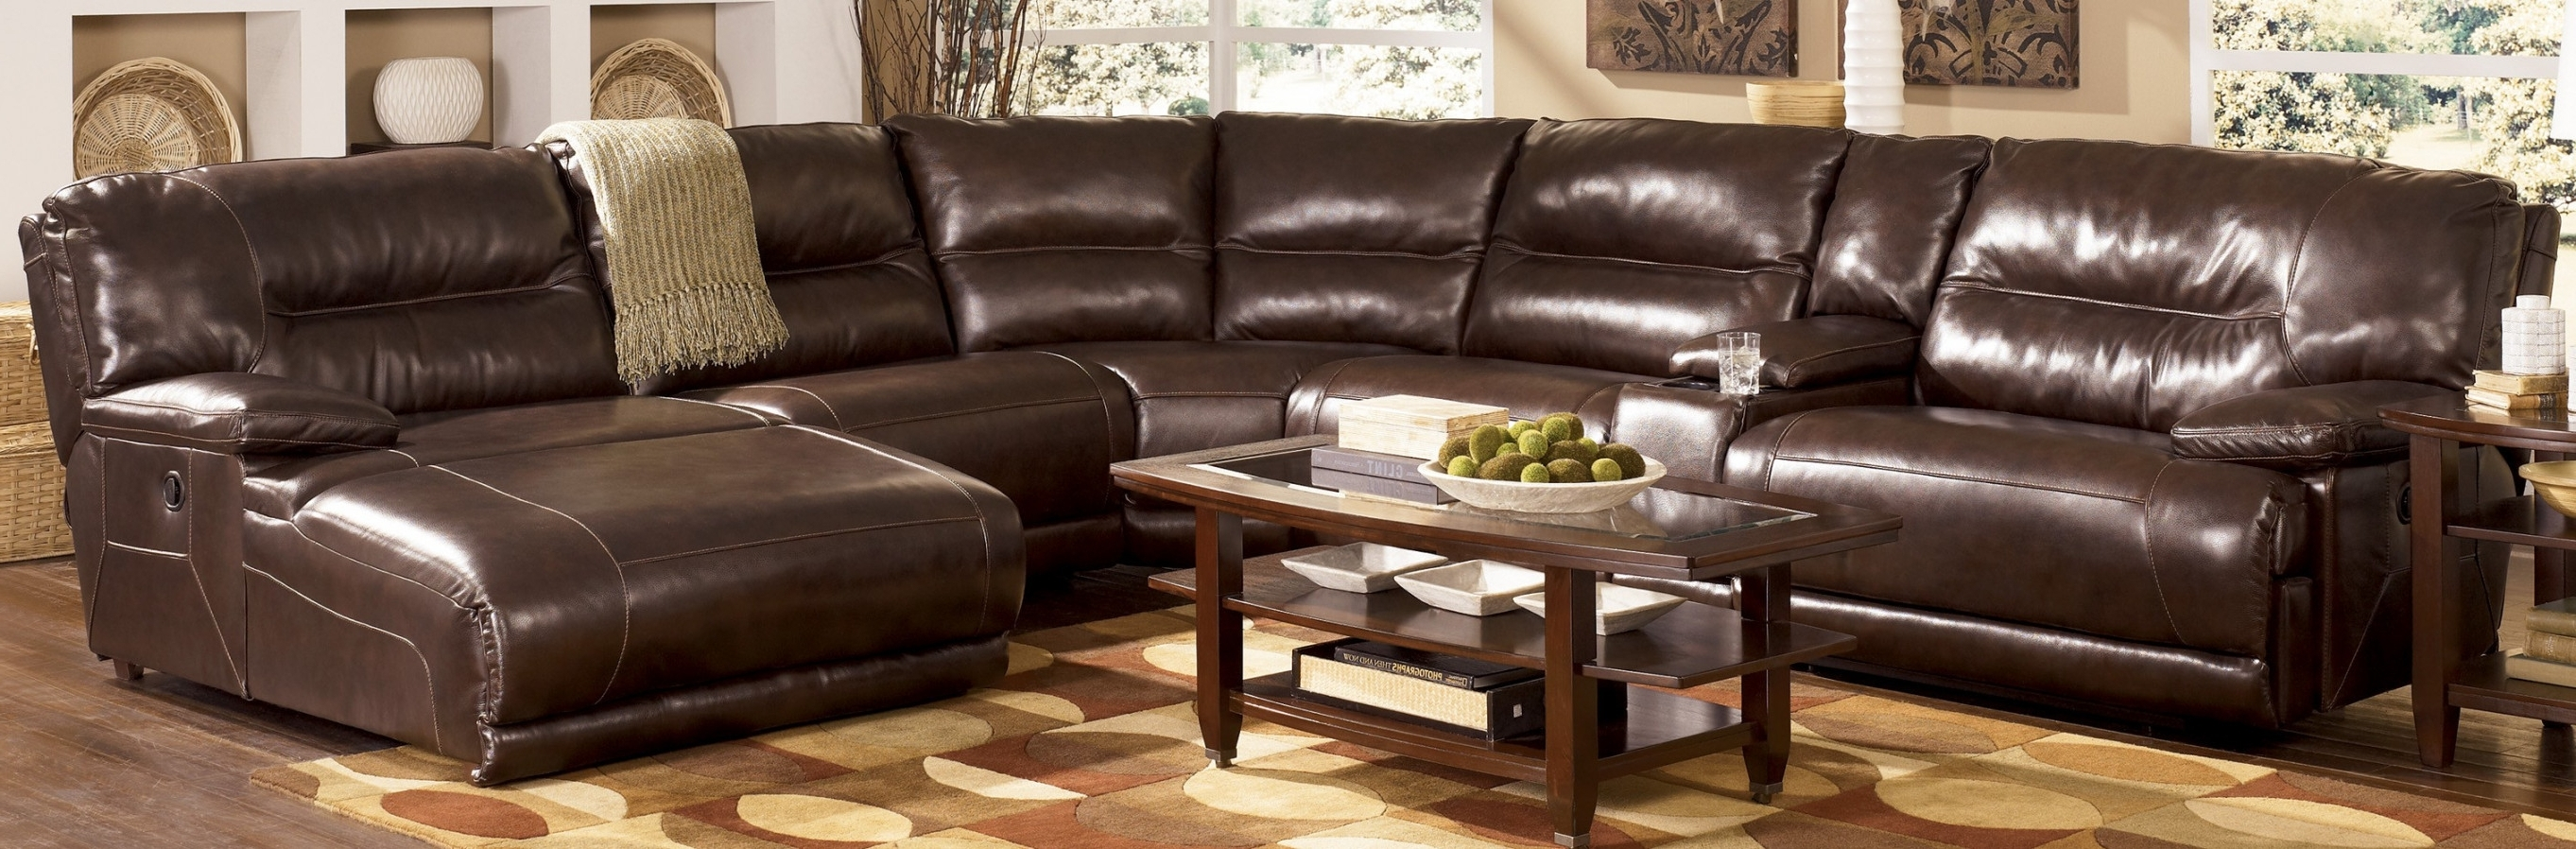 Latest Leather Sectional Sleeper Sofa Sectional Sofas With Recliners And With Regard To Sectional Sofas With Recliners Leather (View 3 of 20)